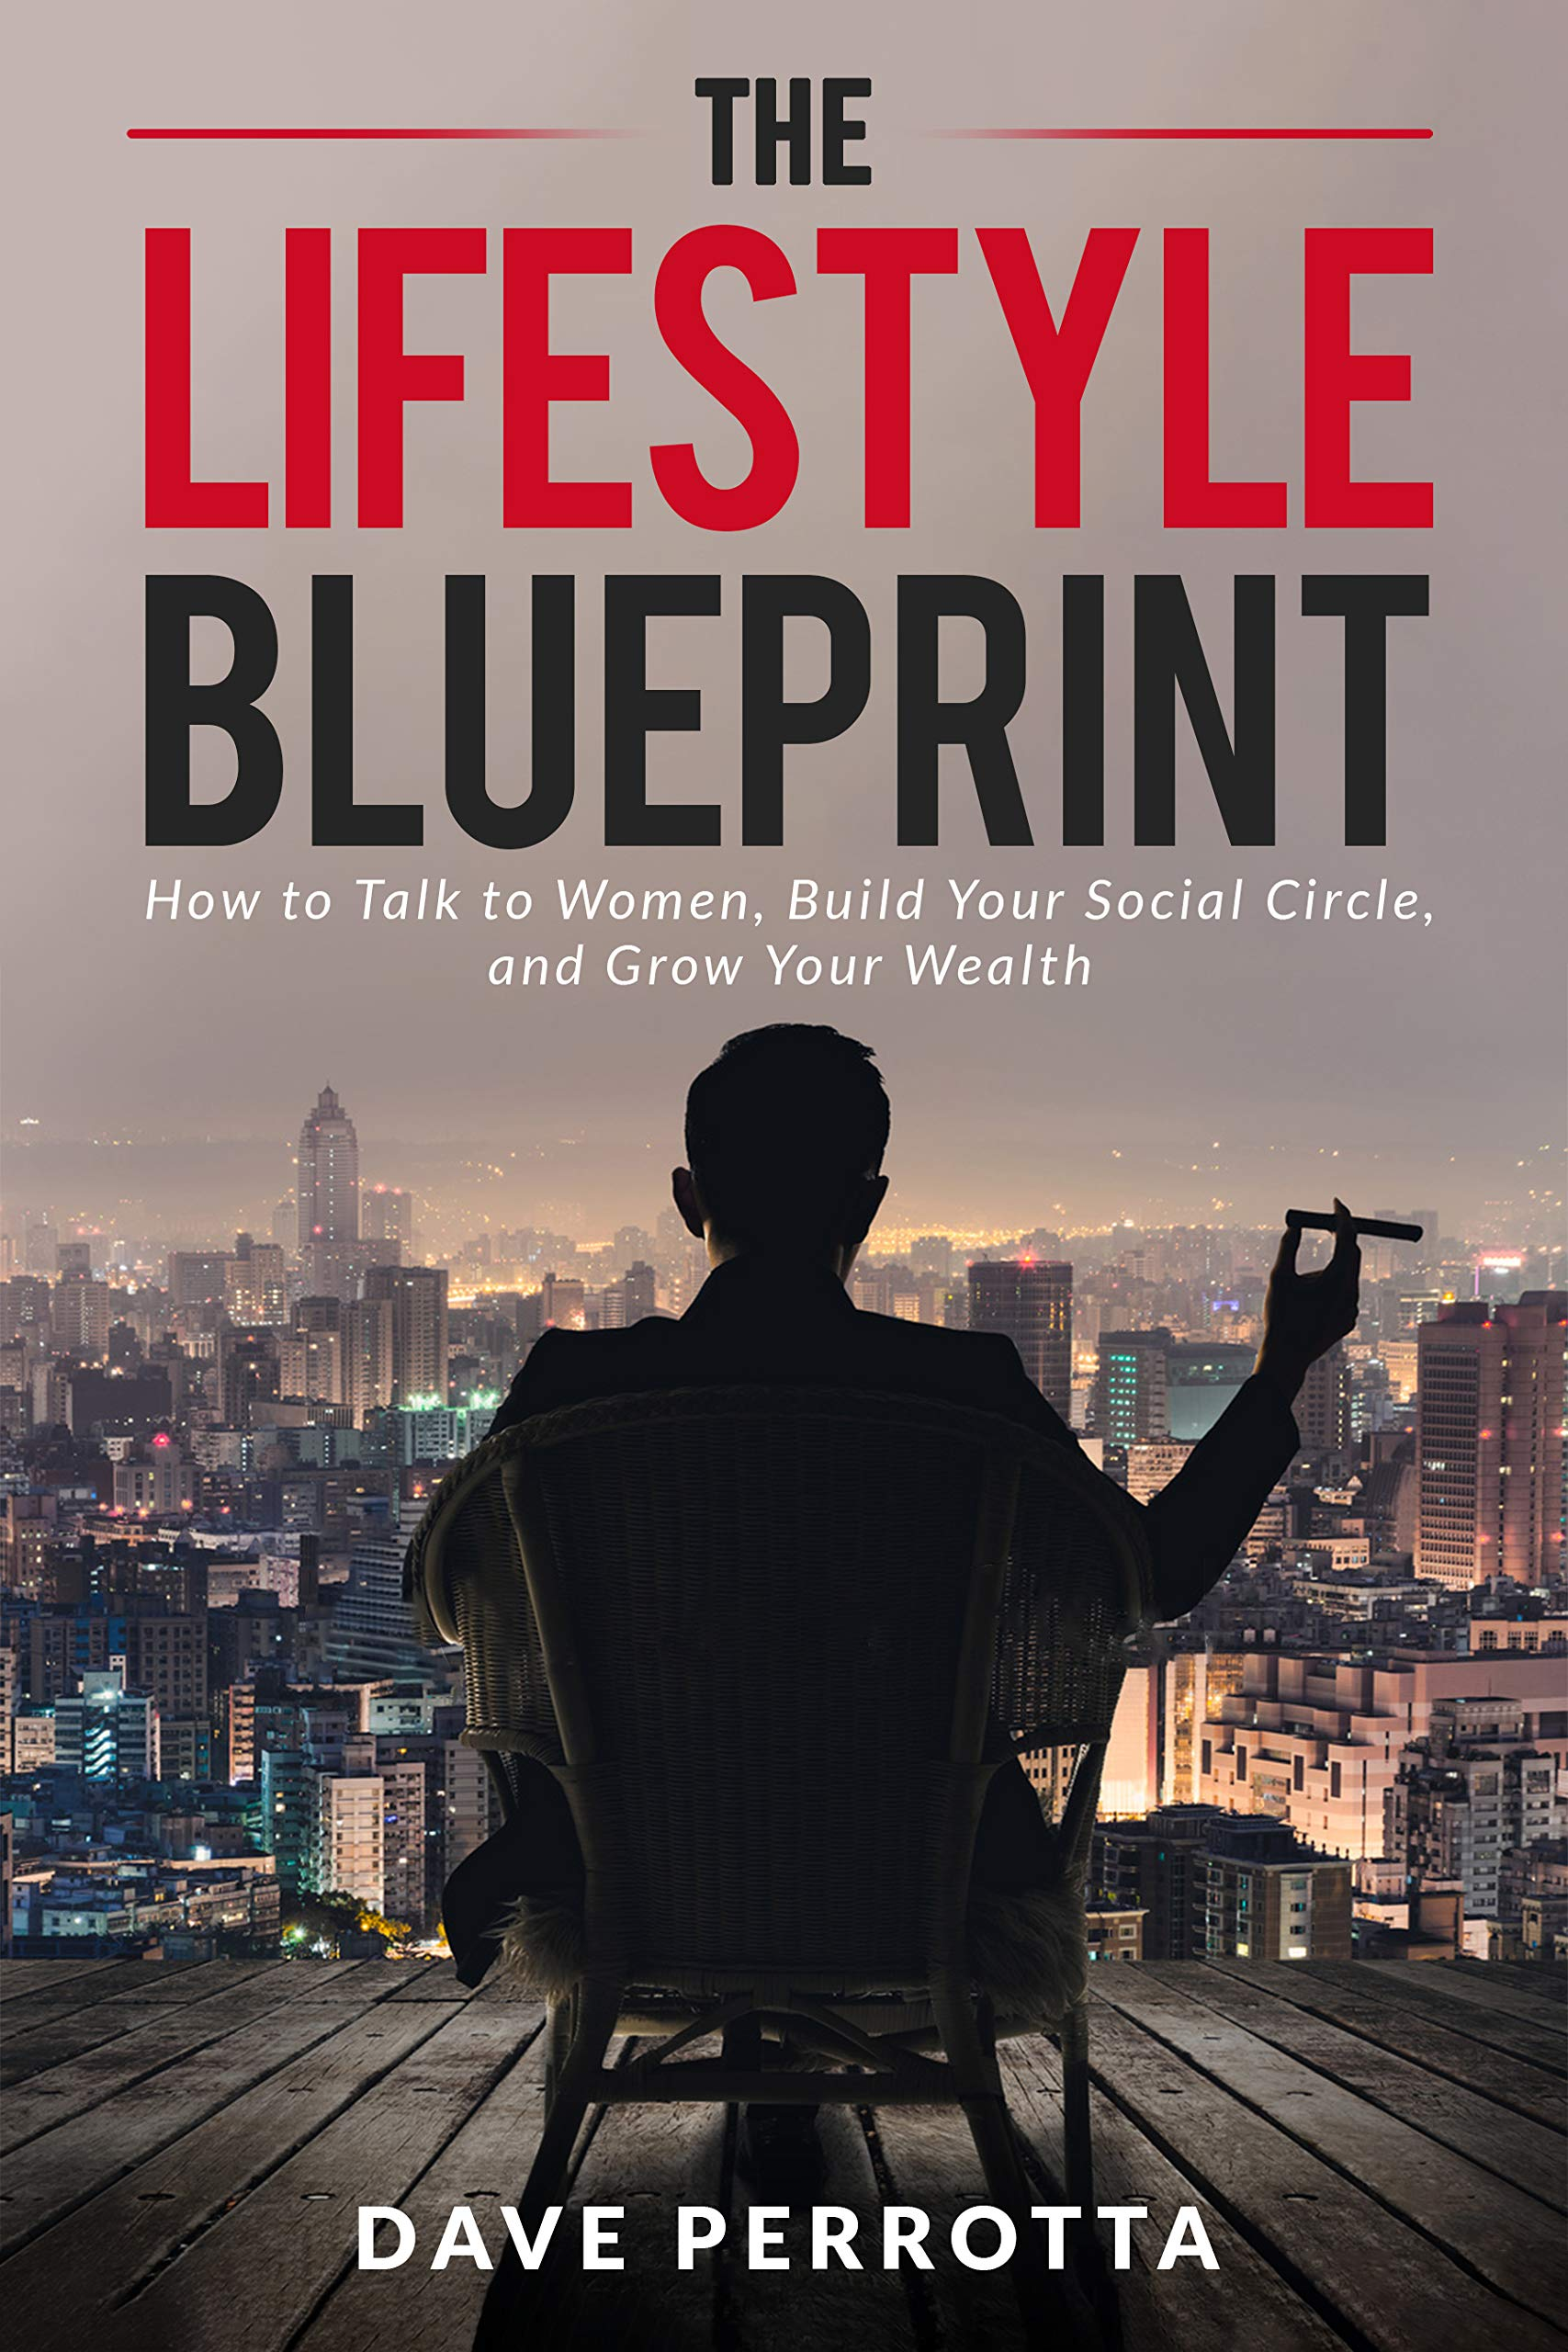 The Lifestyle Blueprint: How to Talk to Women, Build Your Social Circle, and Grow Your Wealth (The Dating & Lifestyle Success Series Book 1)